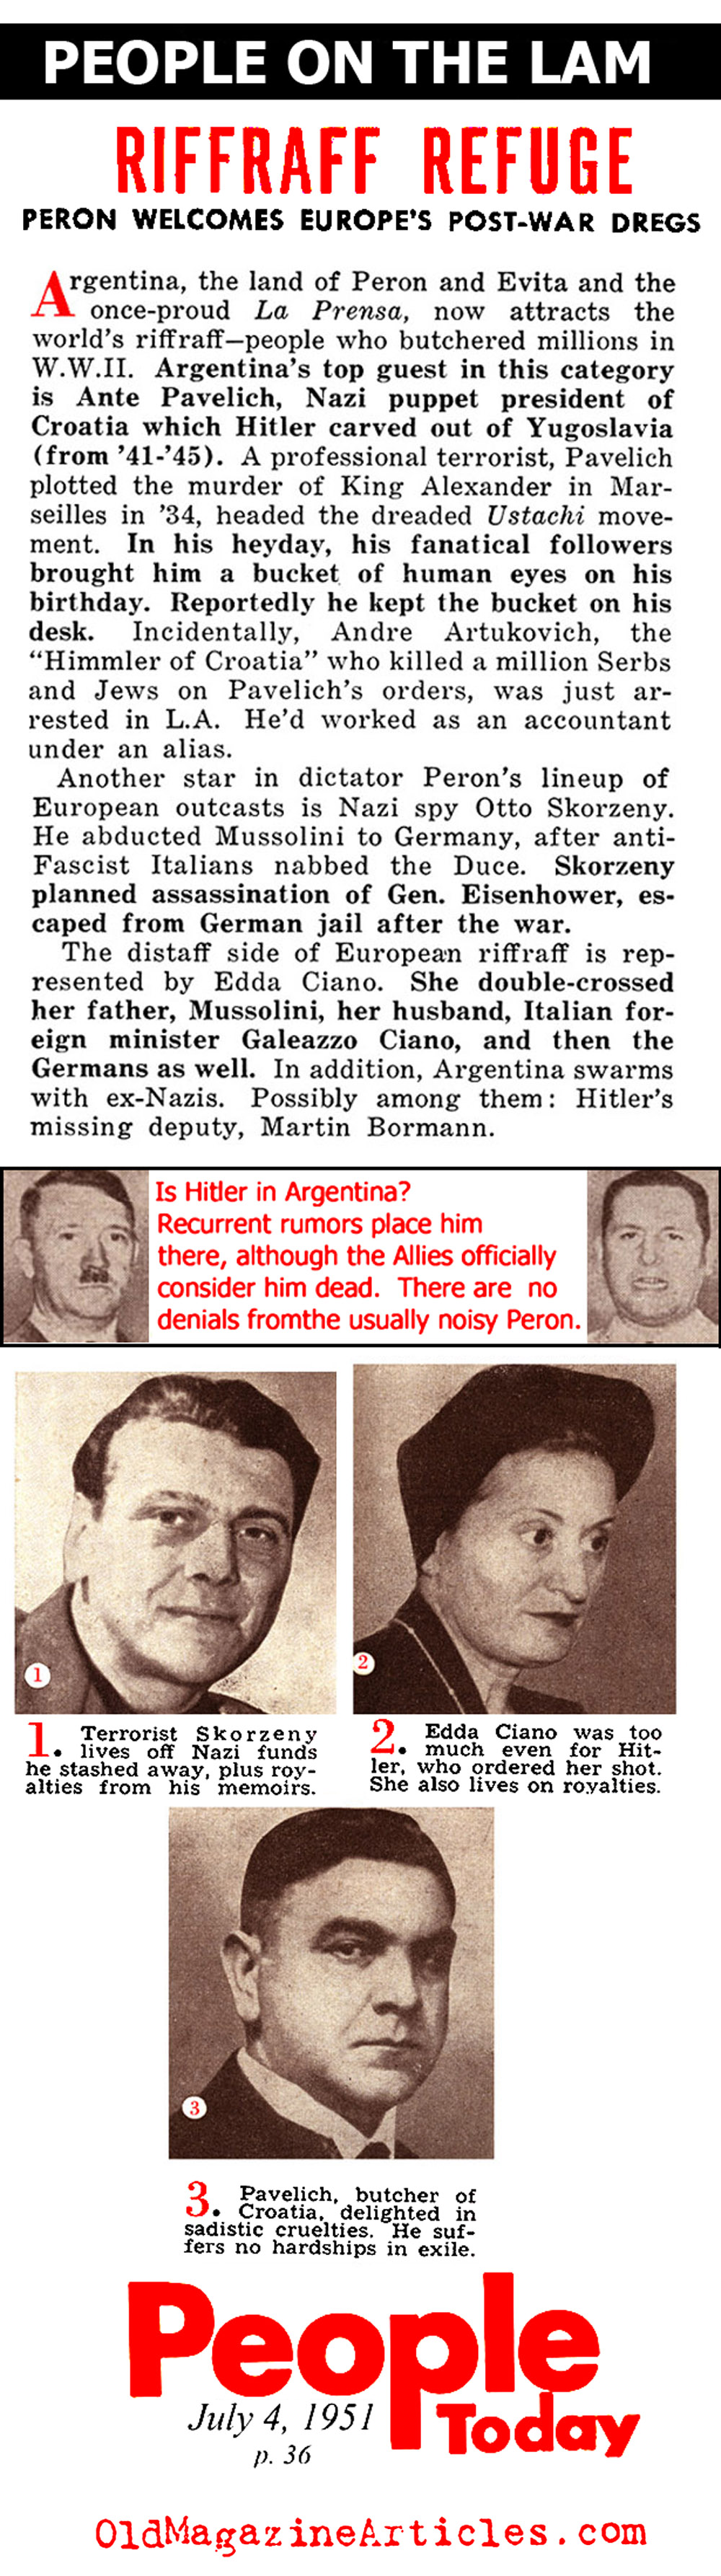 Unrepentant Fascists in Argentina (People Today, 1951)